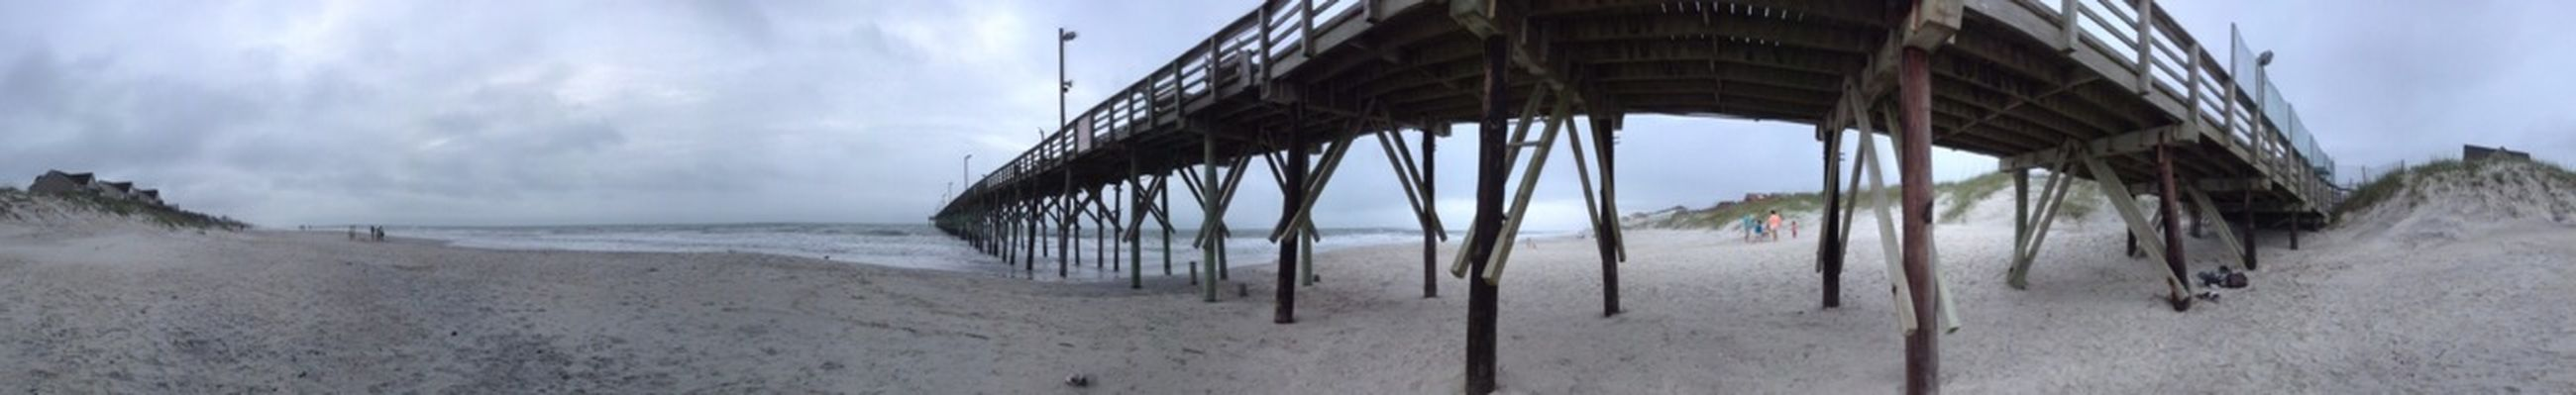 SeaView Fishing Pier Don't Be Square